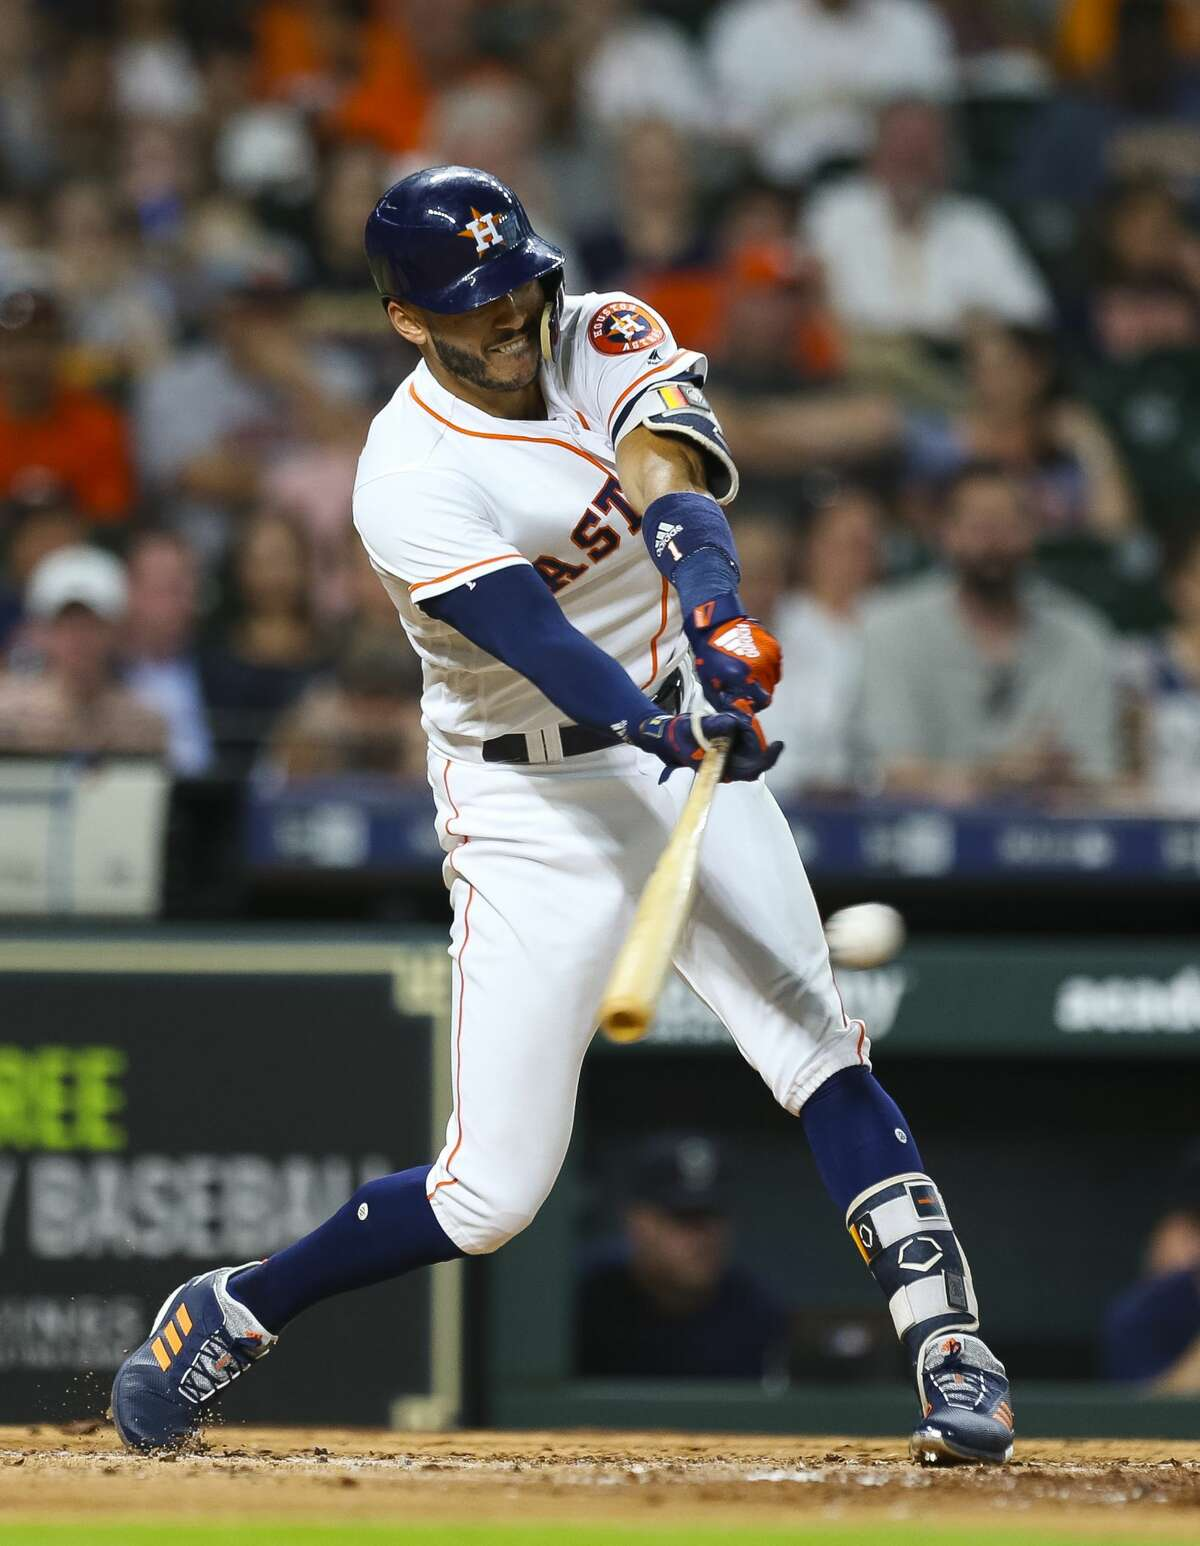 Houston Astros shortstop Carlos Correa (1) hits during the third inning of an MLB game at Minute Maid Park, Wednesday, June 6, 2018, in Houston. ( Mark Mulligan / Houston Chronicle )